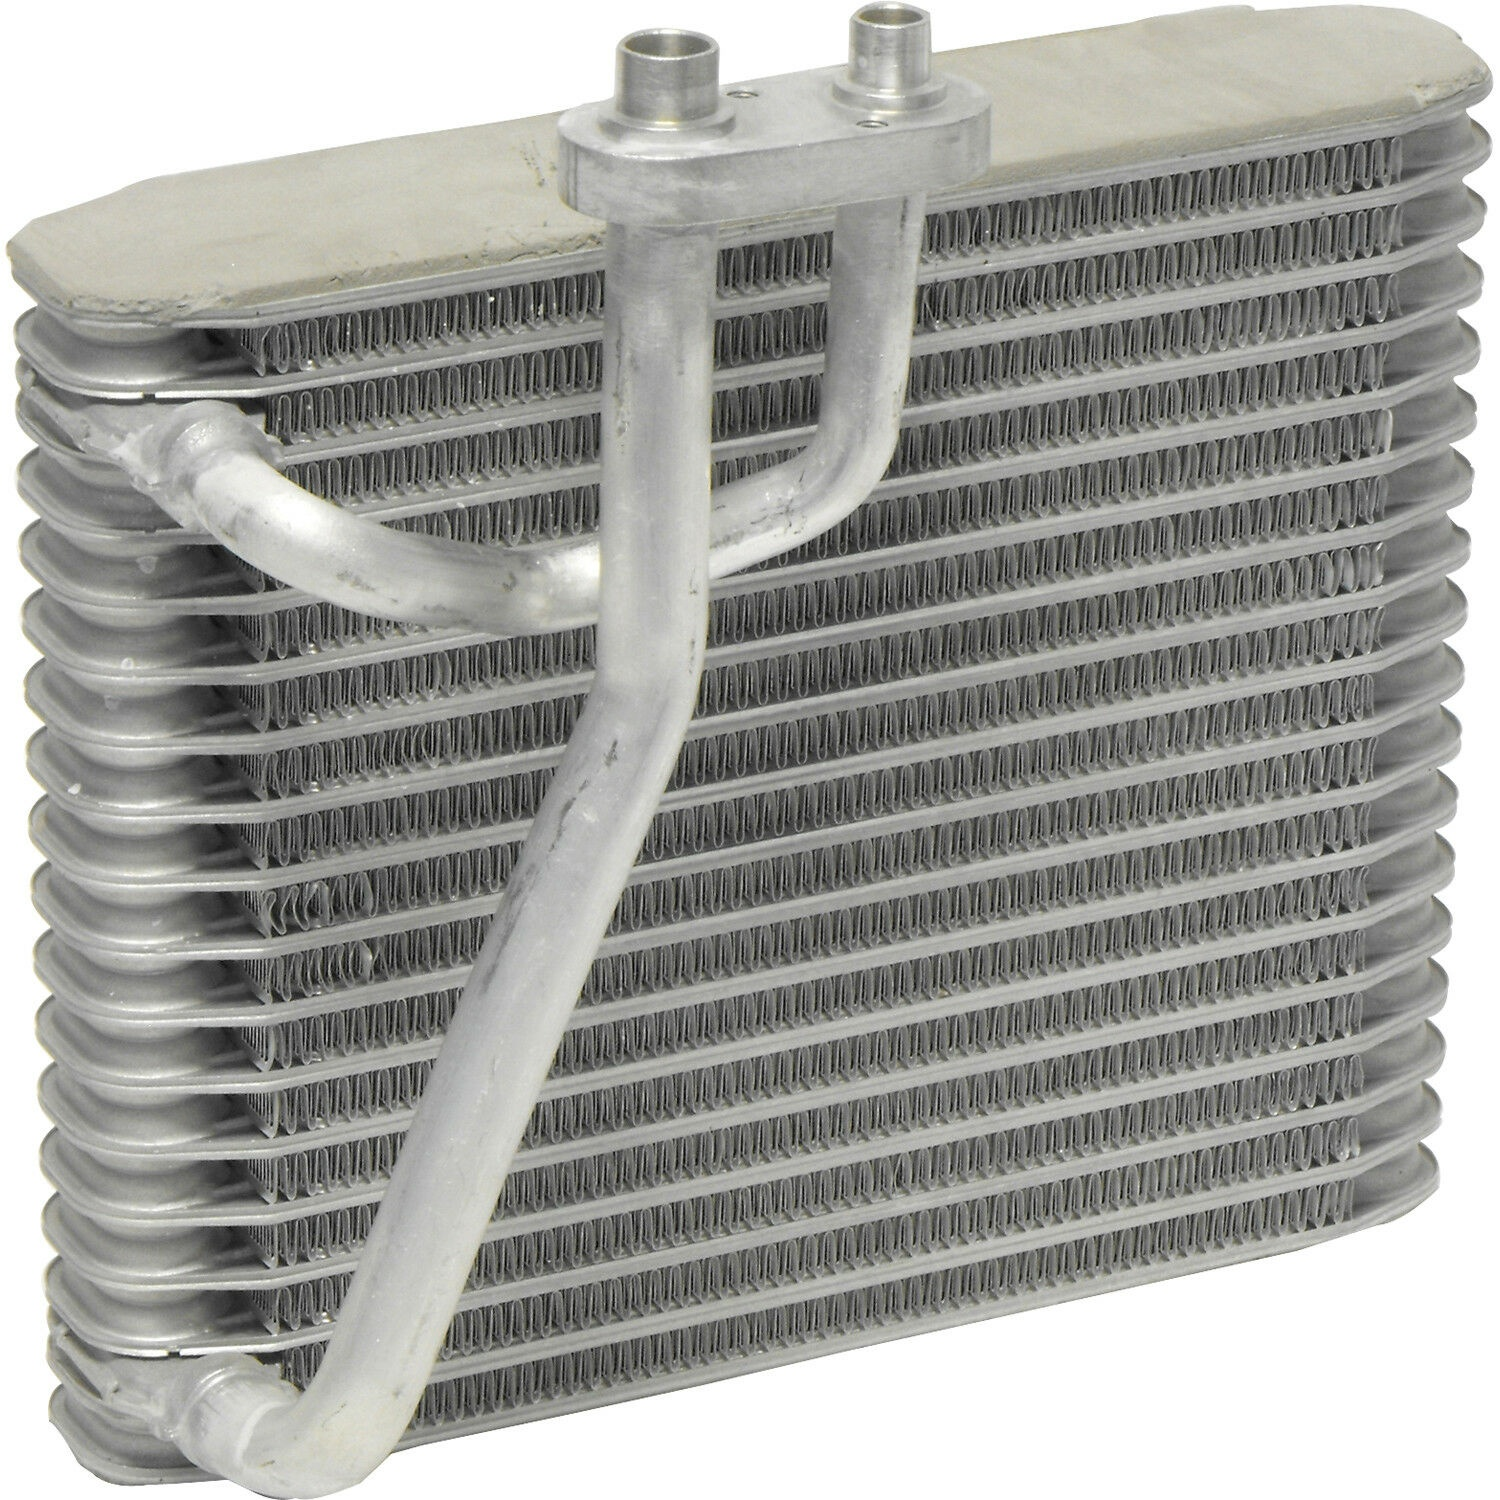 Auto air conditioning system ac evporator coil core for C-HEVORLET SPARK <strong>03</strong>- Size 240*198*47